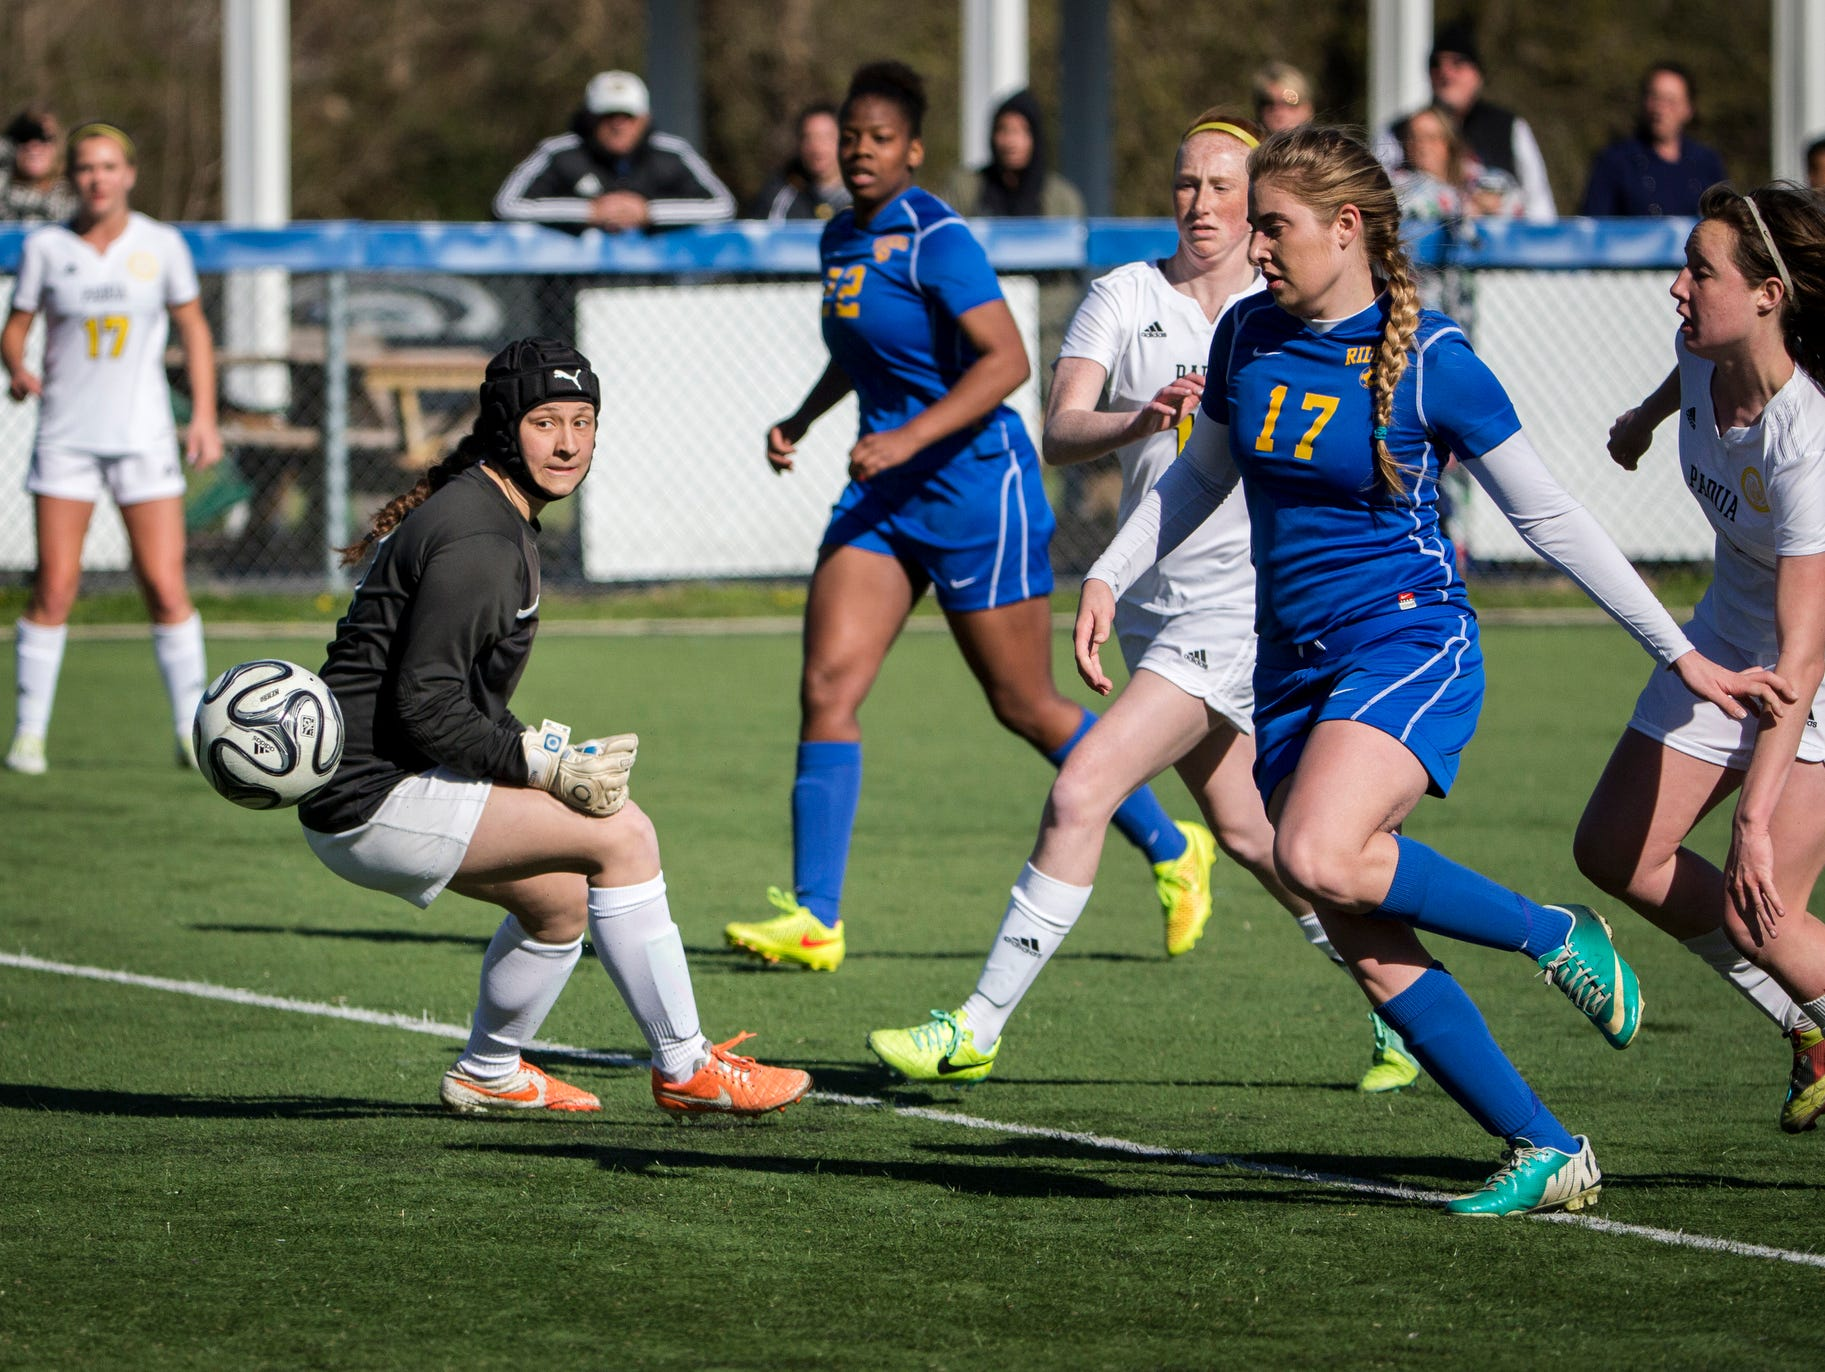 Caesar Rodney keeper Marianna Nuzzo (left) and defender Julia Lyncha (right) chase down the ball after a Padua cross deflected off Lyncha toward the goal for an own-goal in the second half of Padua's 2-0 win over Caesar Rodney at the Hockessin Soccer Club on Tuesday afternoon.